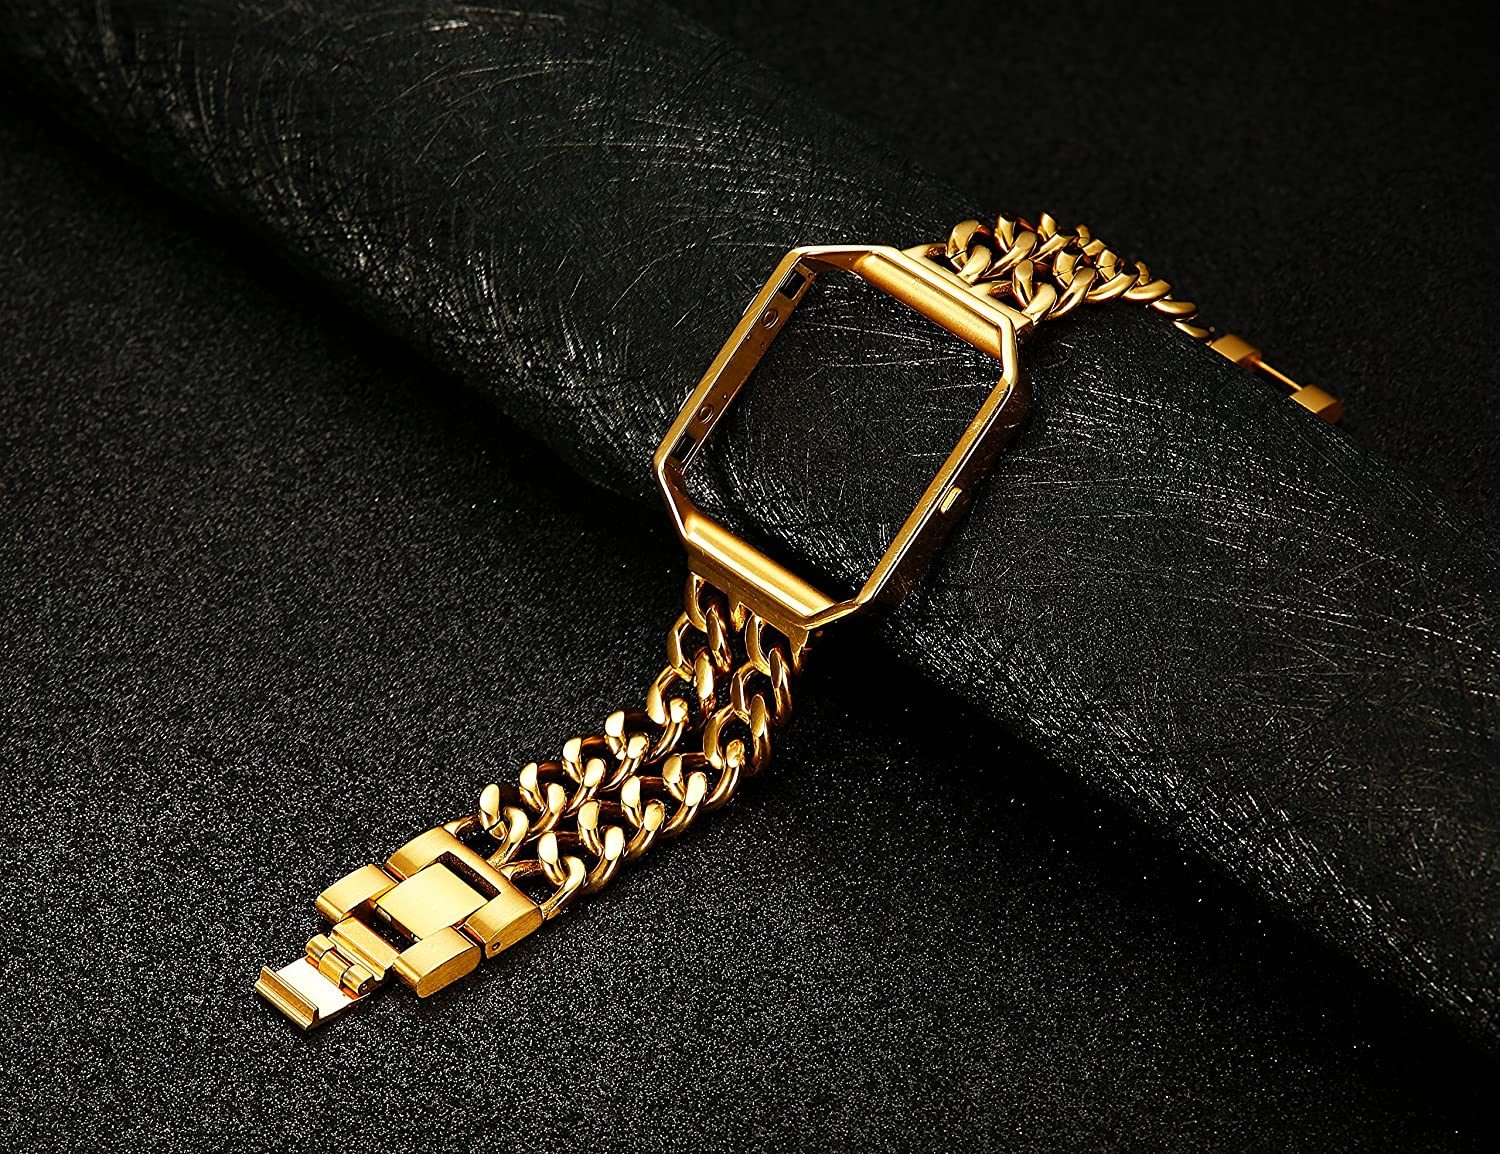 For Fitbit Blaze Band Thunaraz Replacement Band Stainless Steel Chain Band with Metal Frame Silver Black Gold Rose Gold Tone for Fitbit Blaze with Tempered Glass Screen Protector